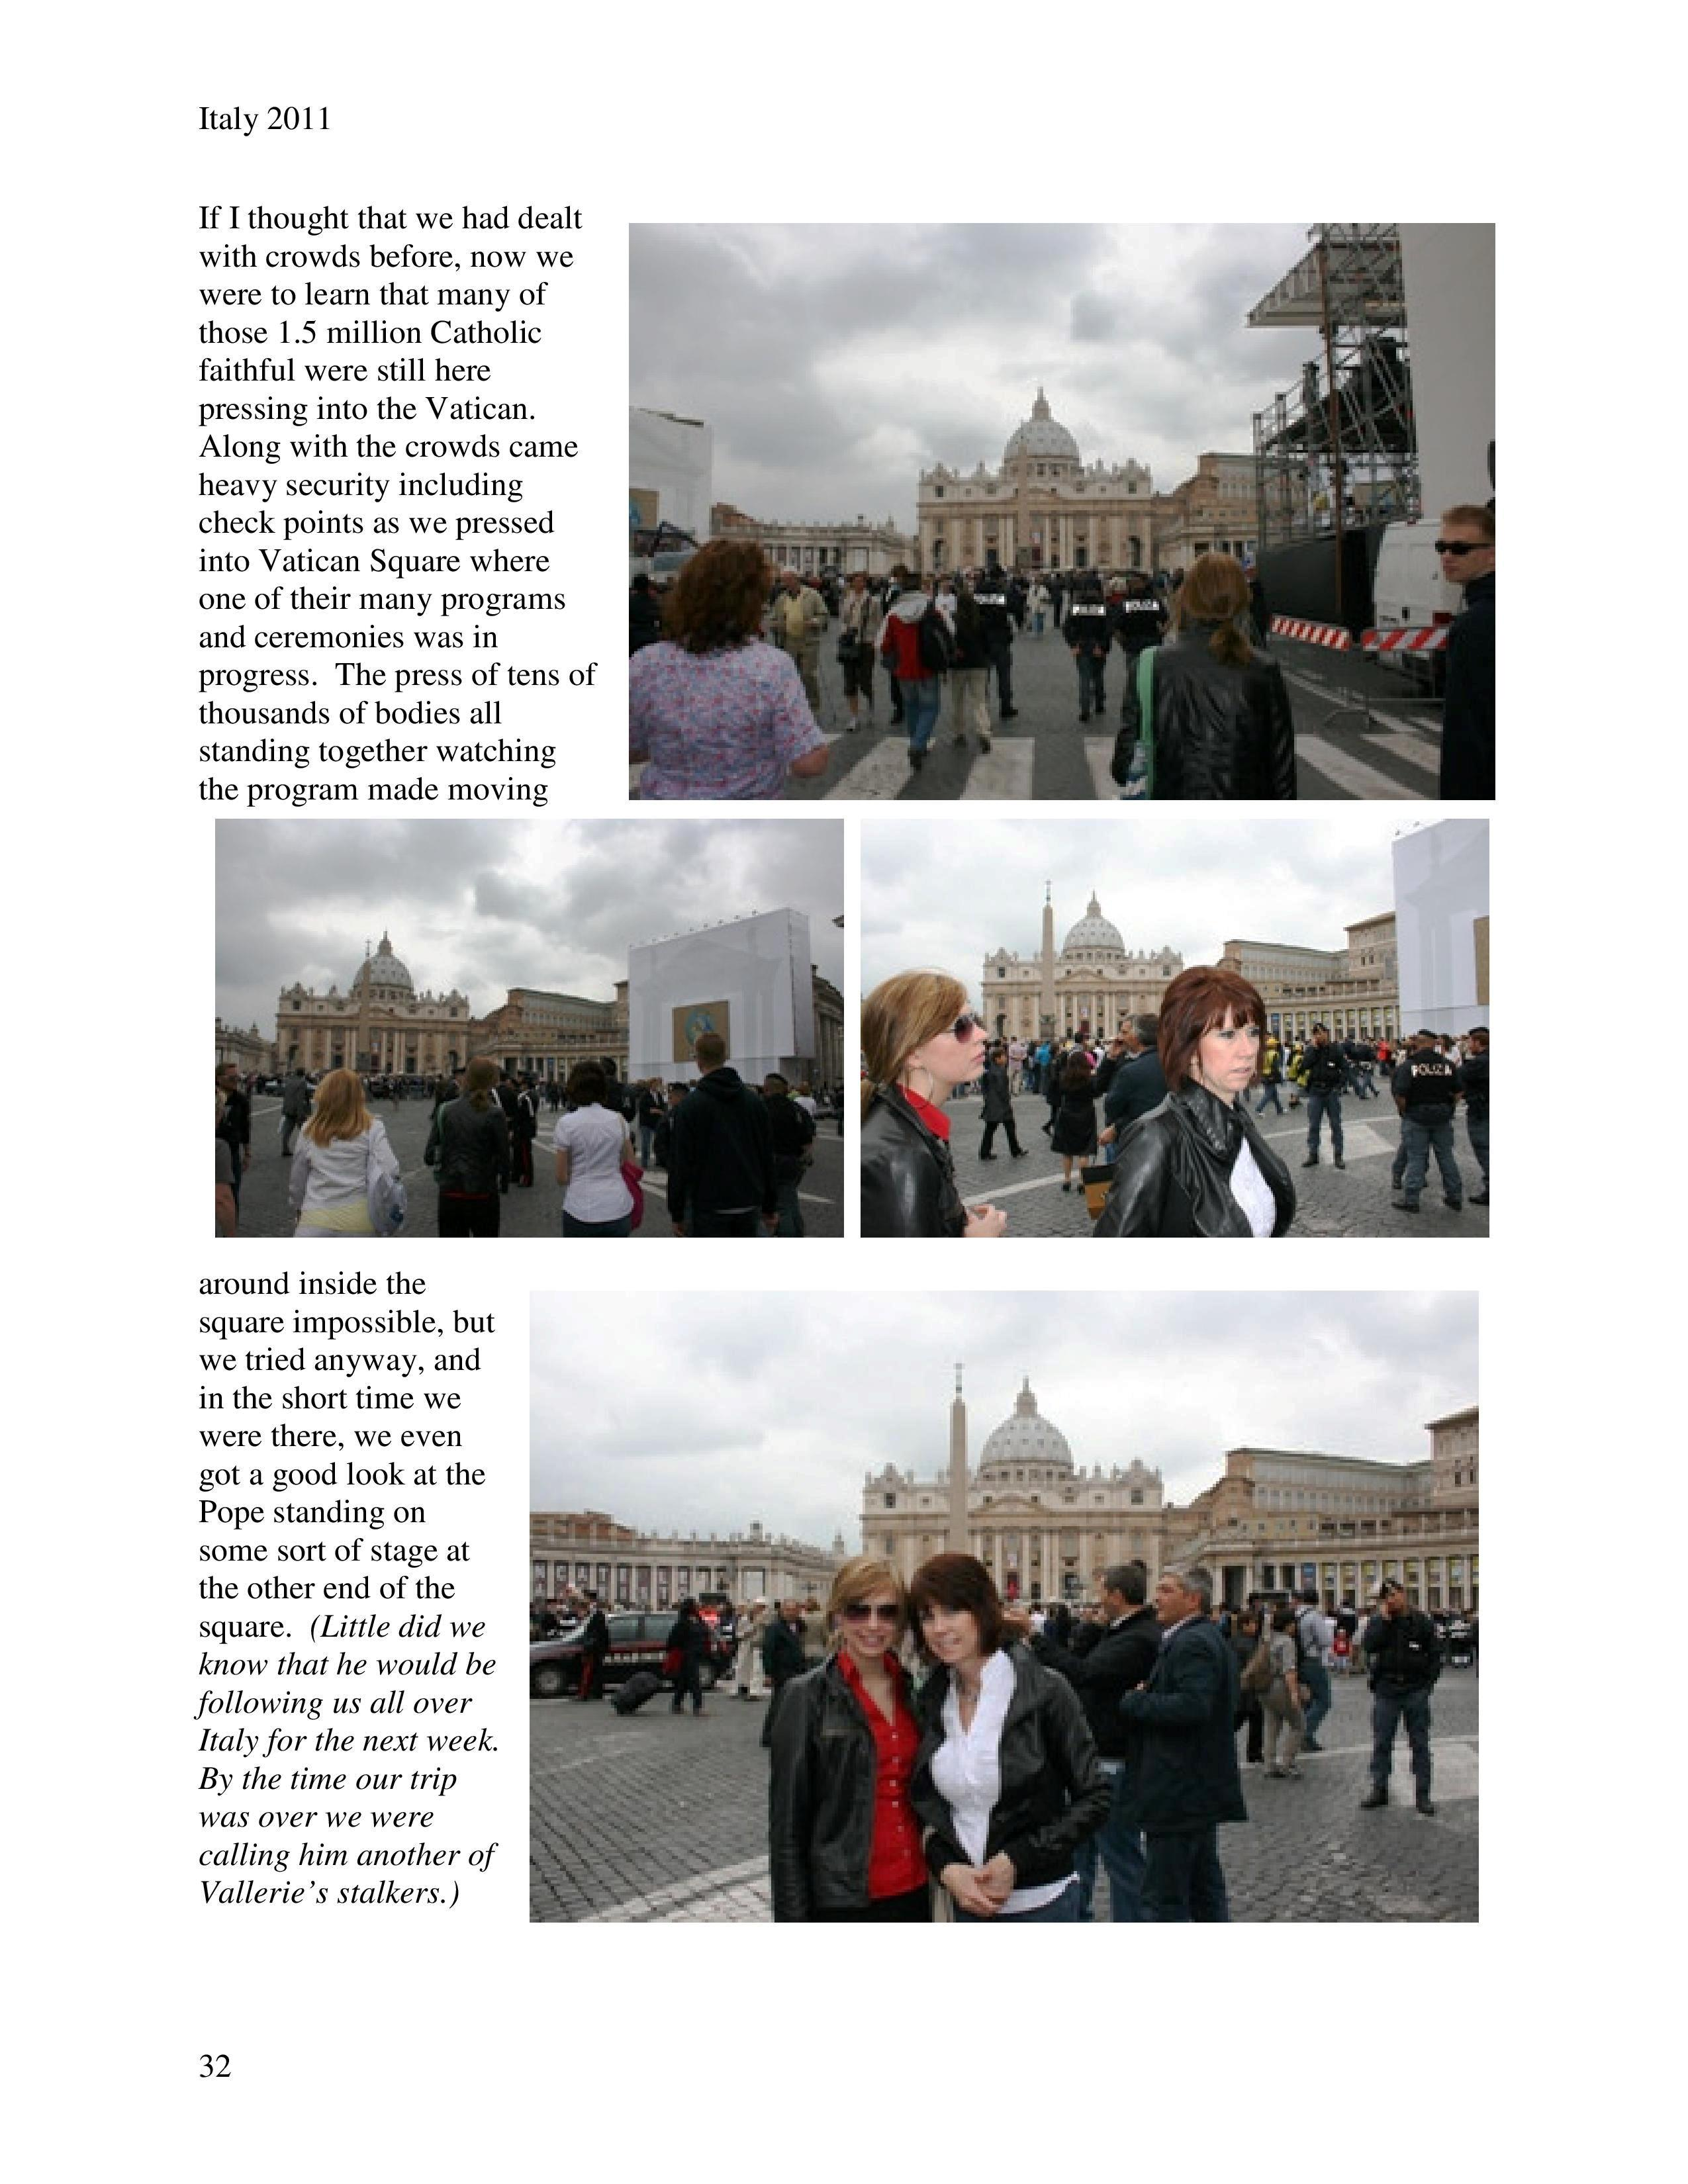 Italy 2011 May 2 - Day 4-page-006